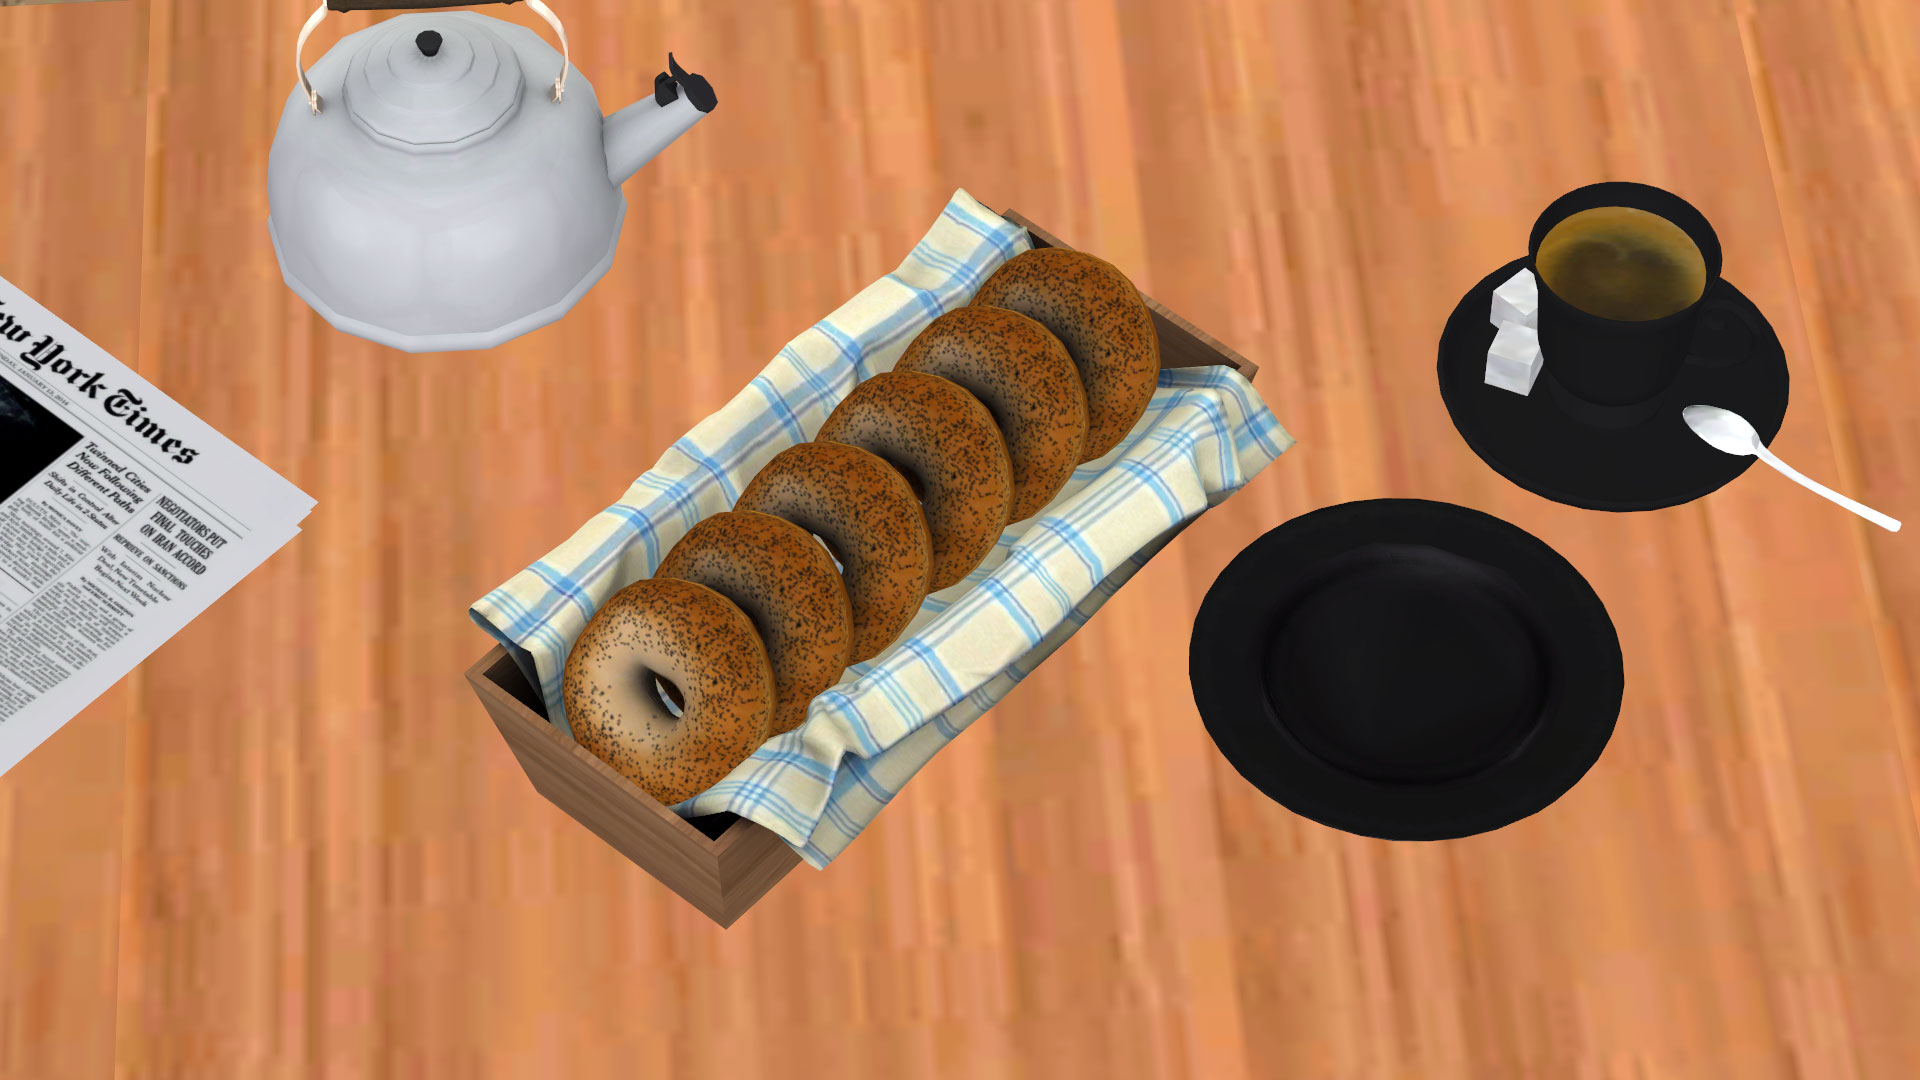 Breakfast Bagels, high quality sims 4 cc, sunkissedlilacs, free sims 4 furniture, sims 4 custom content,